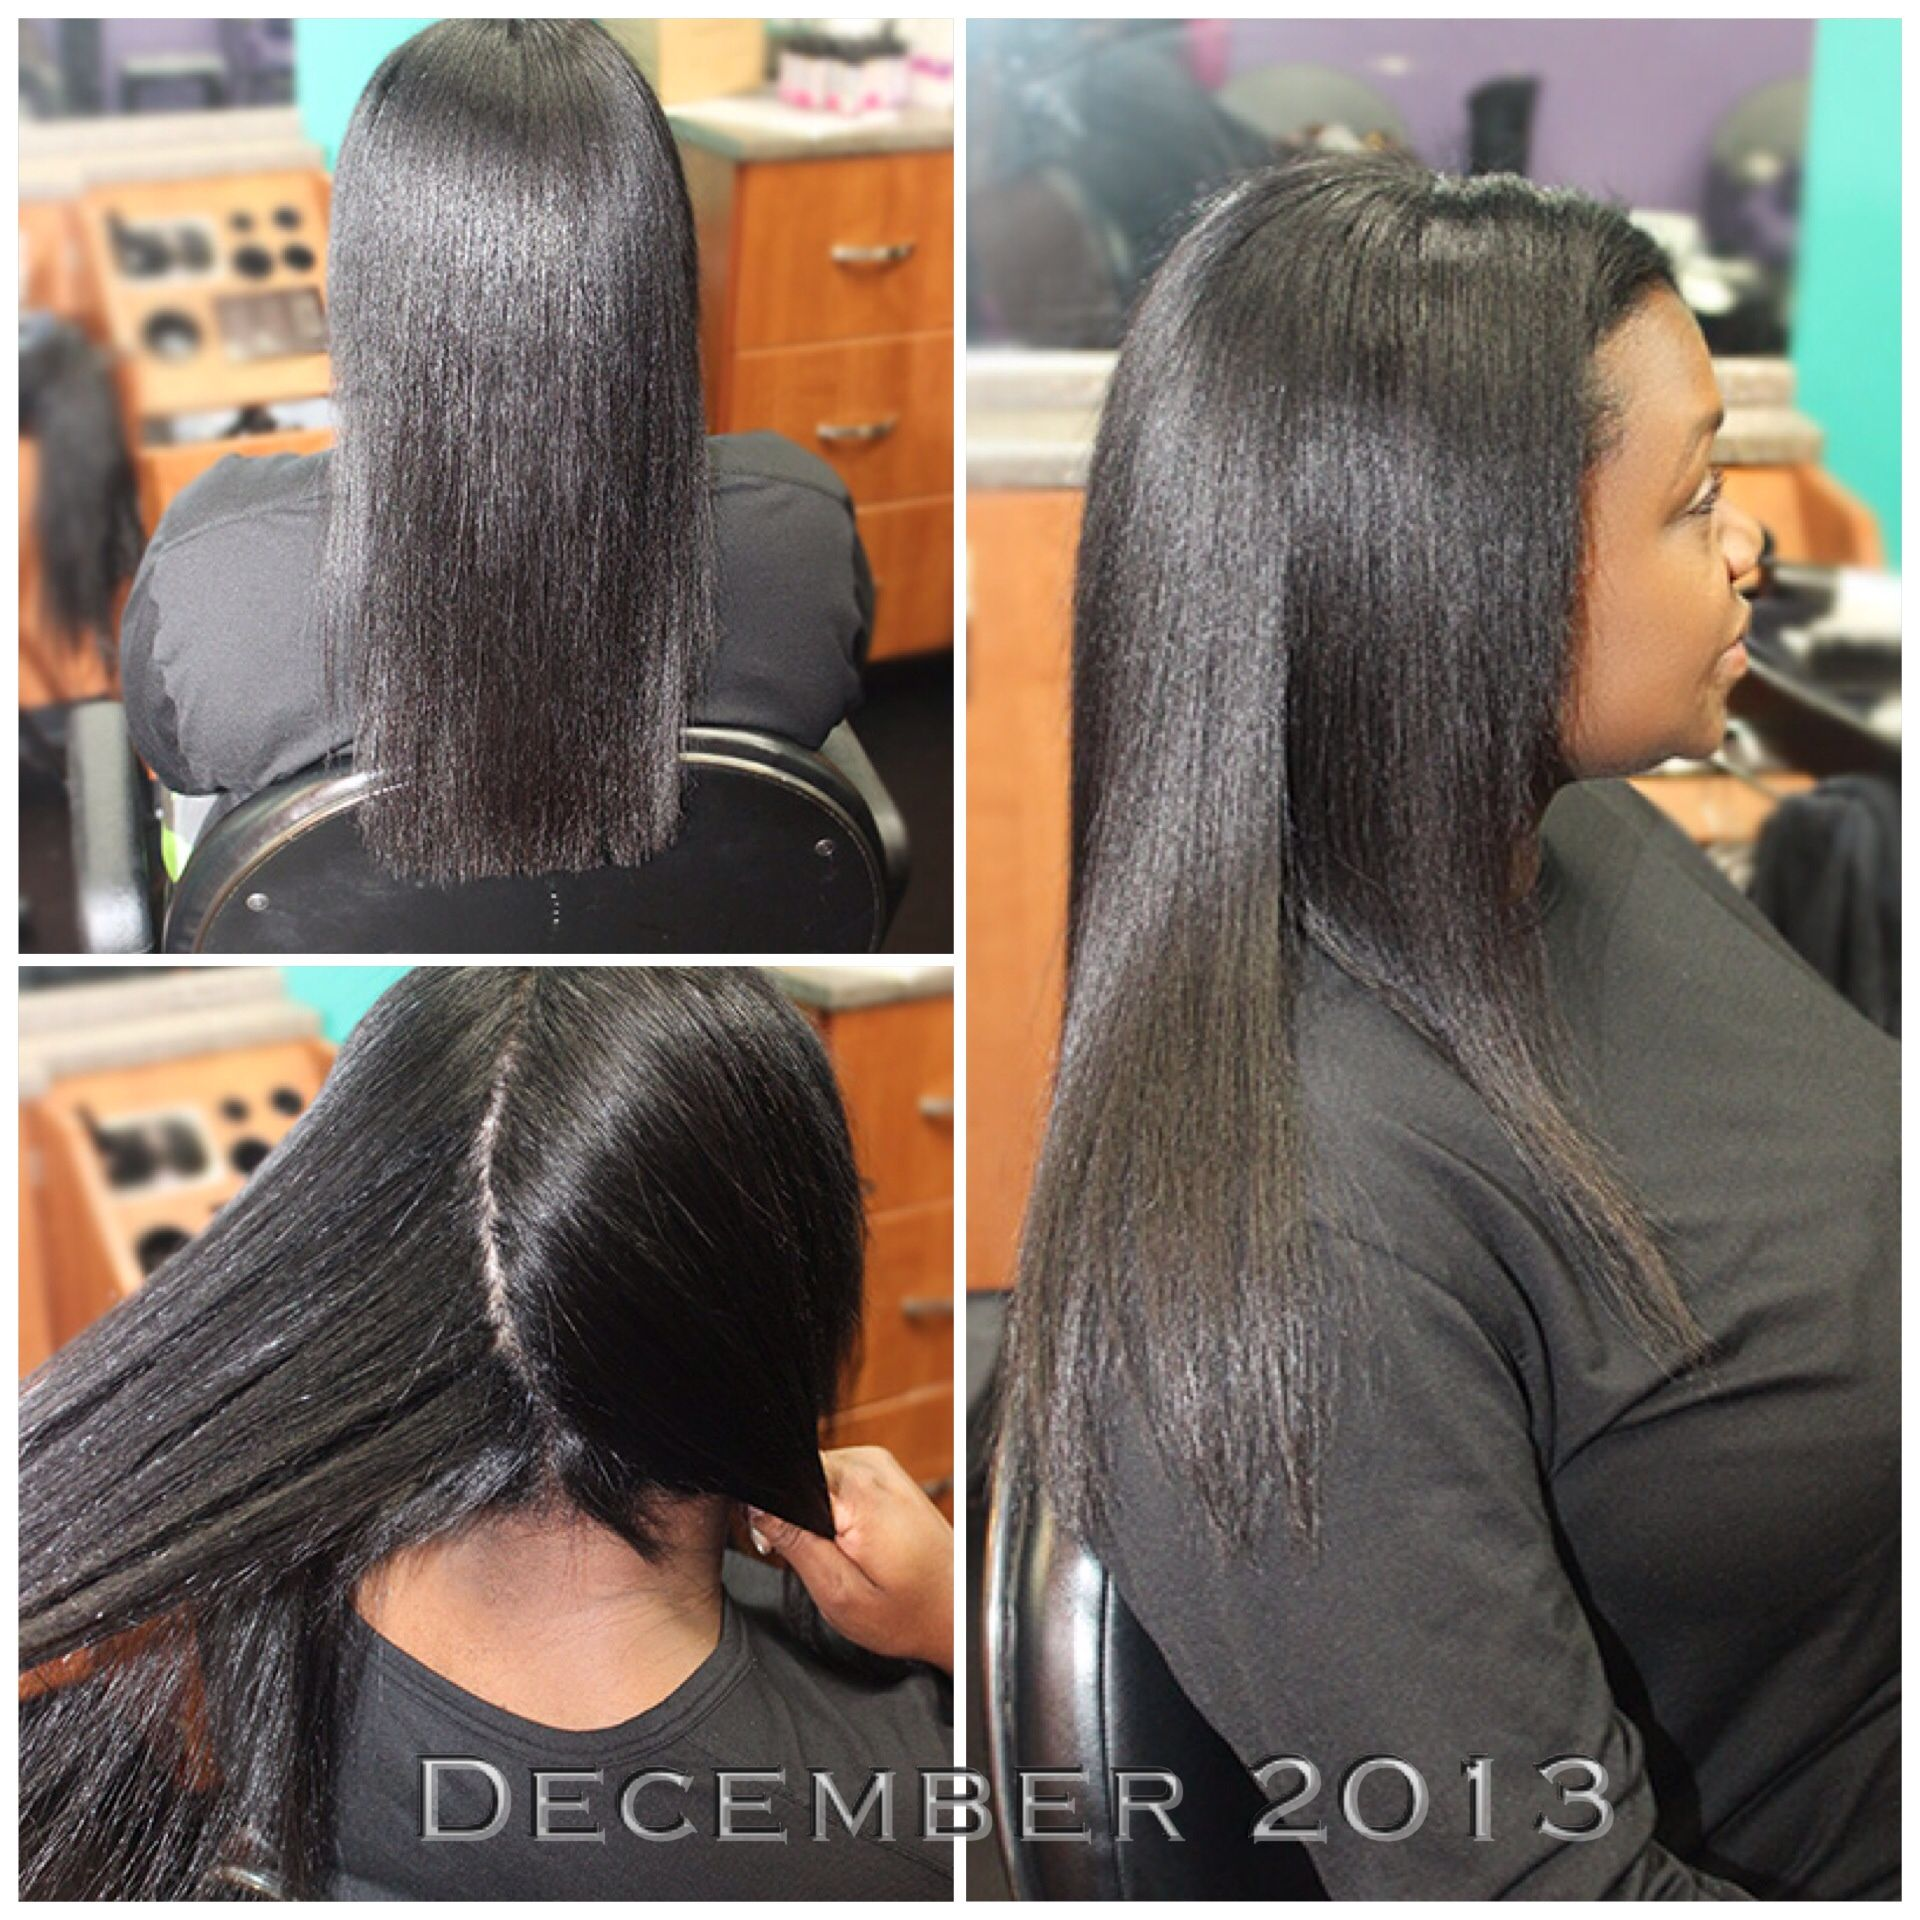 Hair Growth From 1 Year Of Wearing Hairtenders Signature Sew In